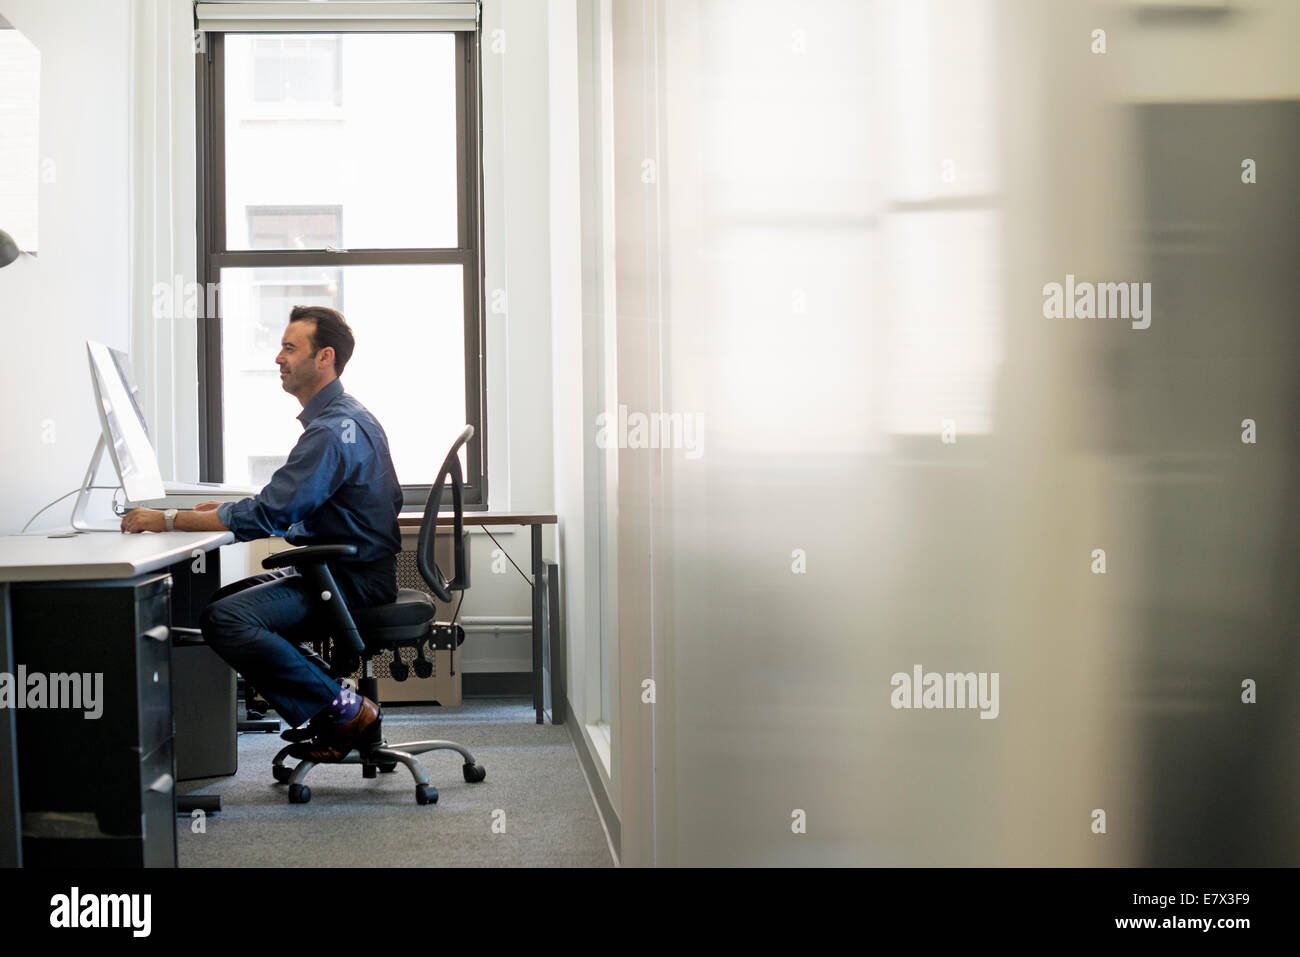 La vie de bureau. Un homme en habits assis à un bureau, regarder un écran d'ordinateur. Photo Stock